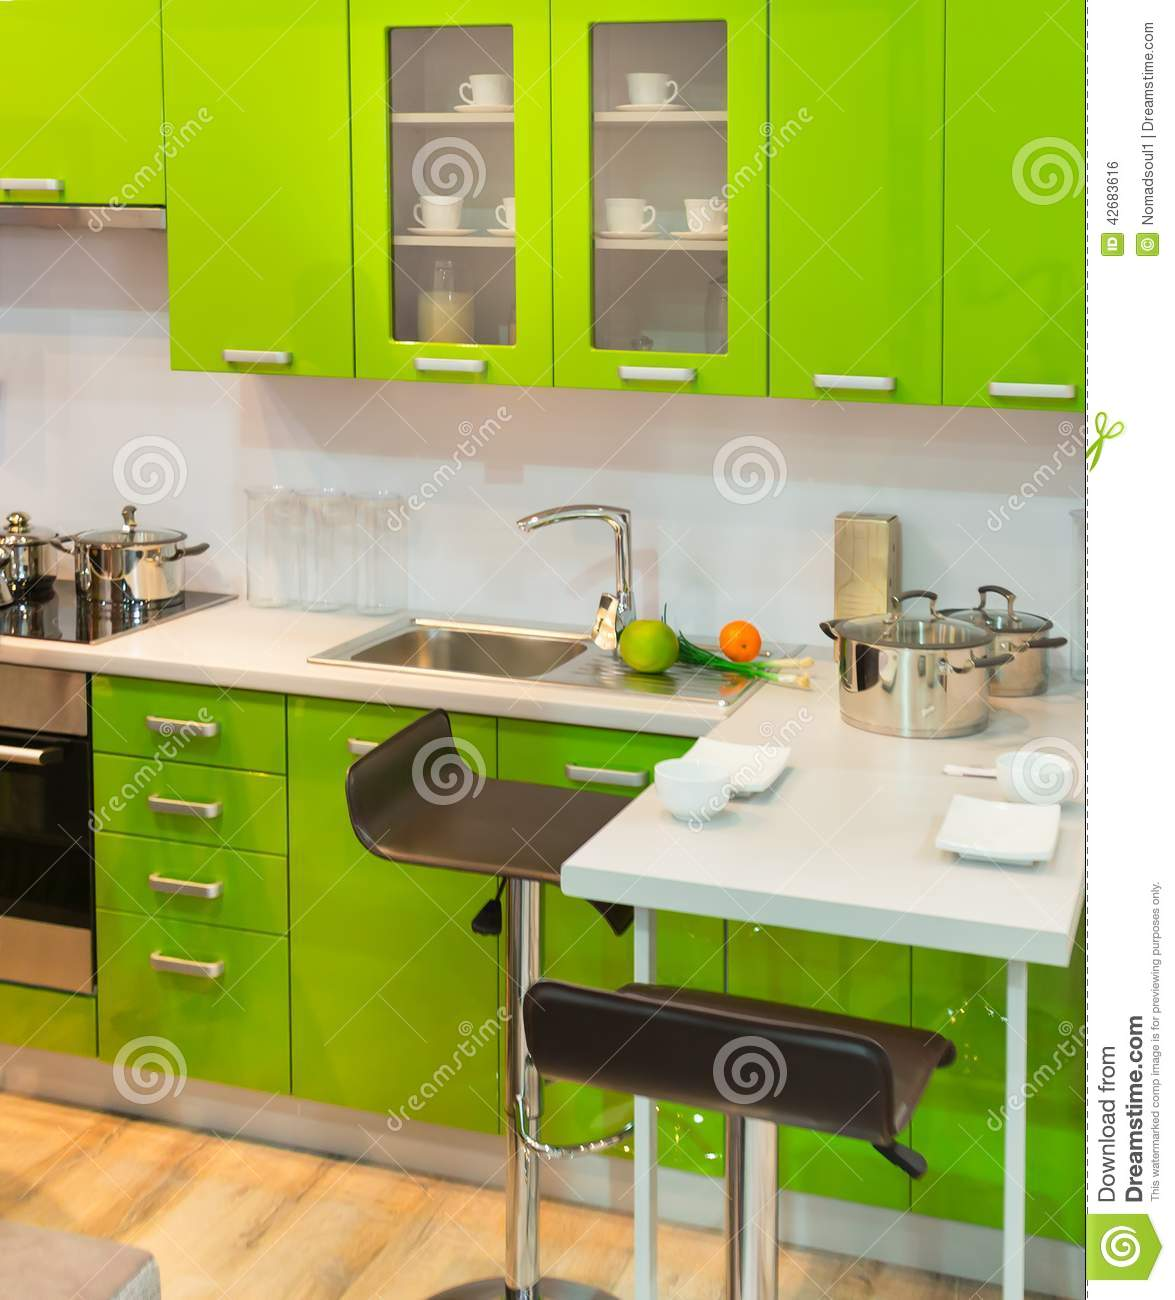 Modern green kitchen clean interior design stock photo for Modern green kitchen designs